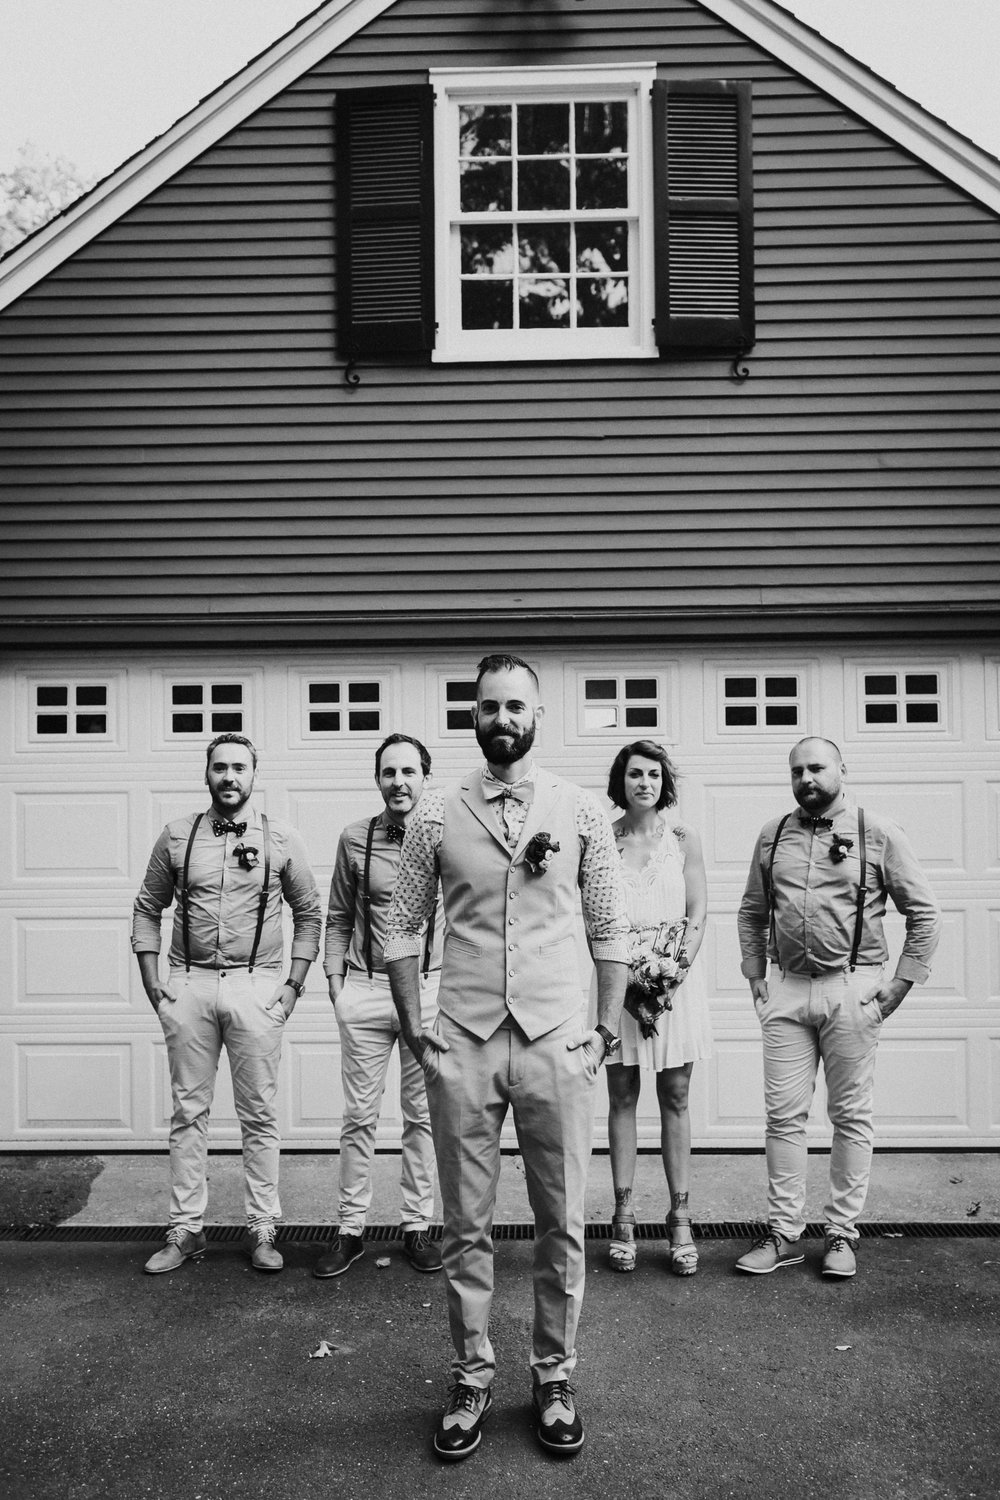 Backyard-Intimate-Adventurous-Destination-Wedding-Darien-Connecticut-Documentary-Wedding-Photography-74.jpg